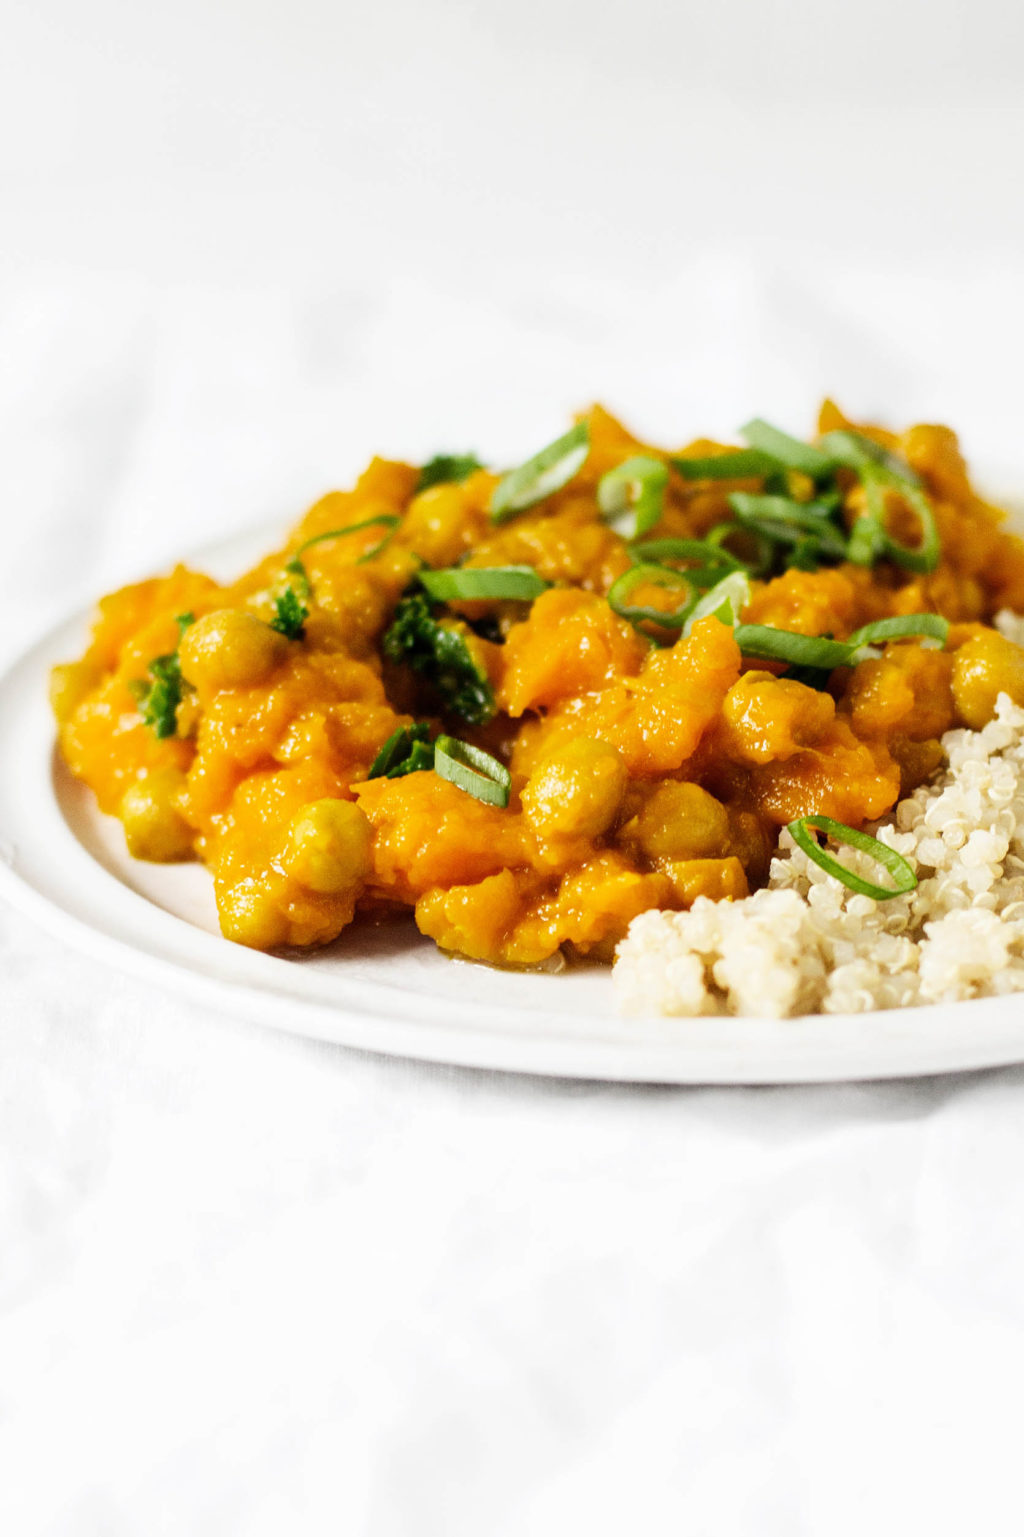 Curried butternut squash, golden raisins, and chickpeas make for a hearty and delicious winter meal. They're served with chopped green onions and cooked quinoa.